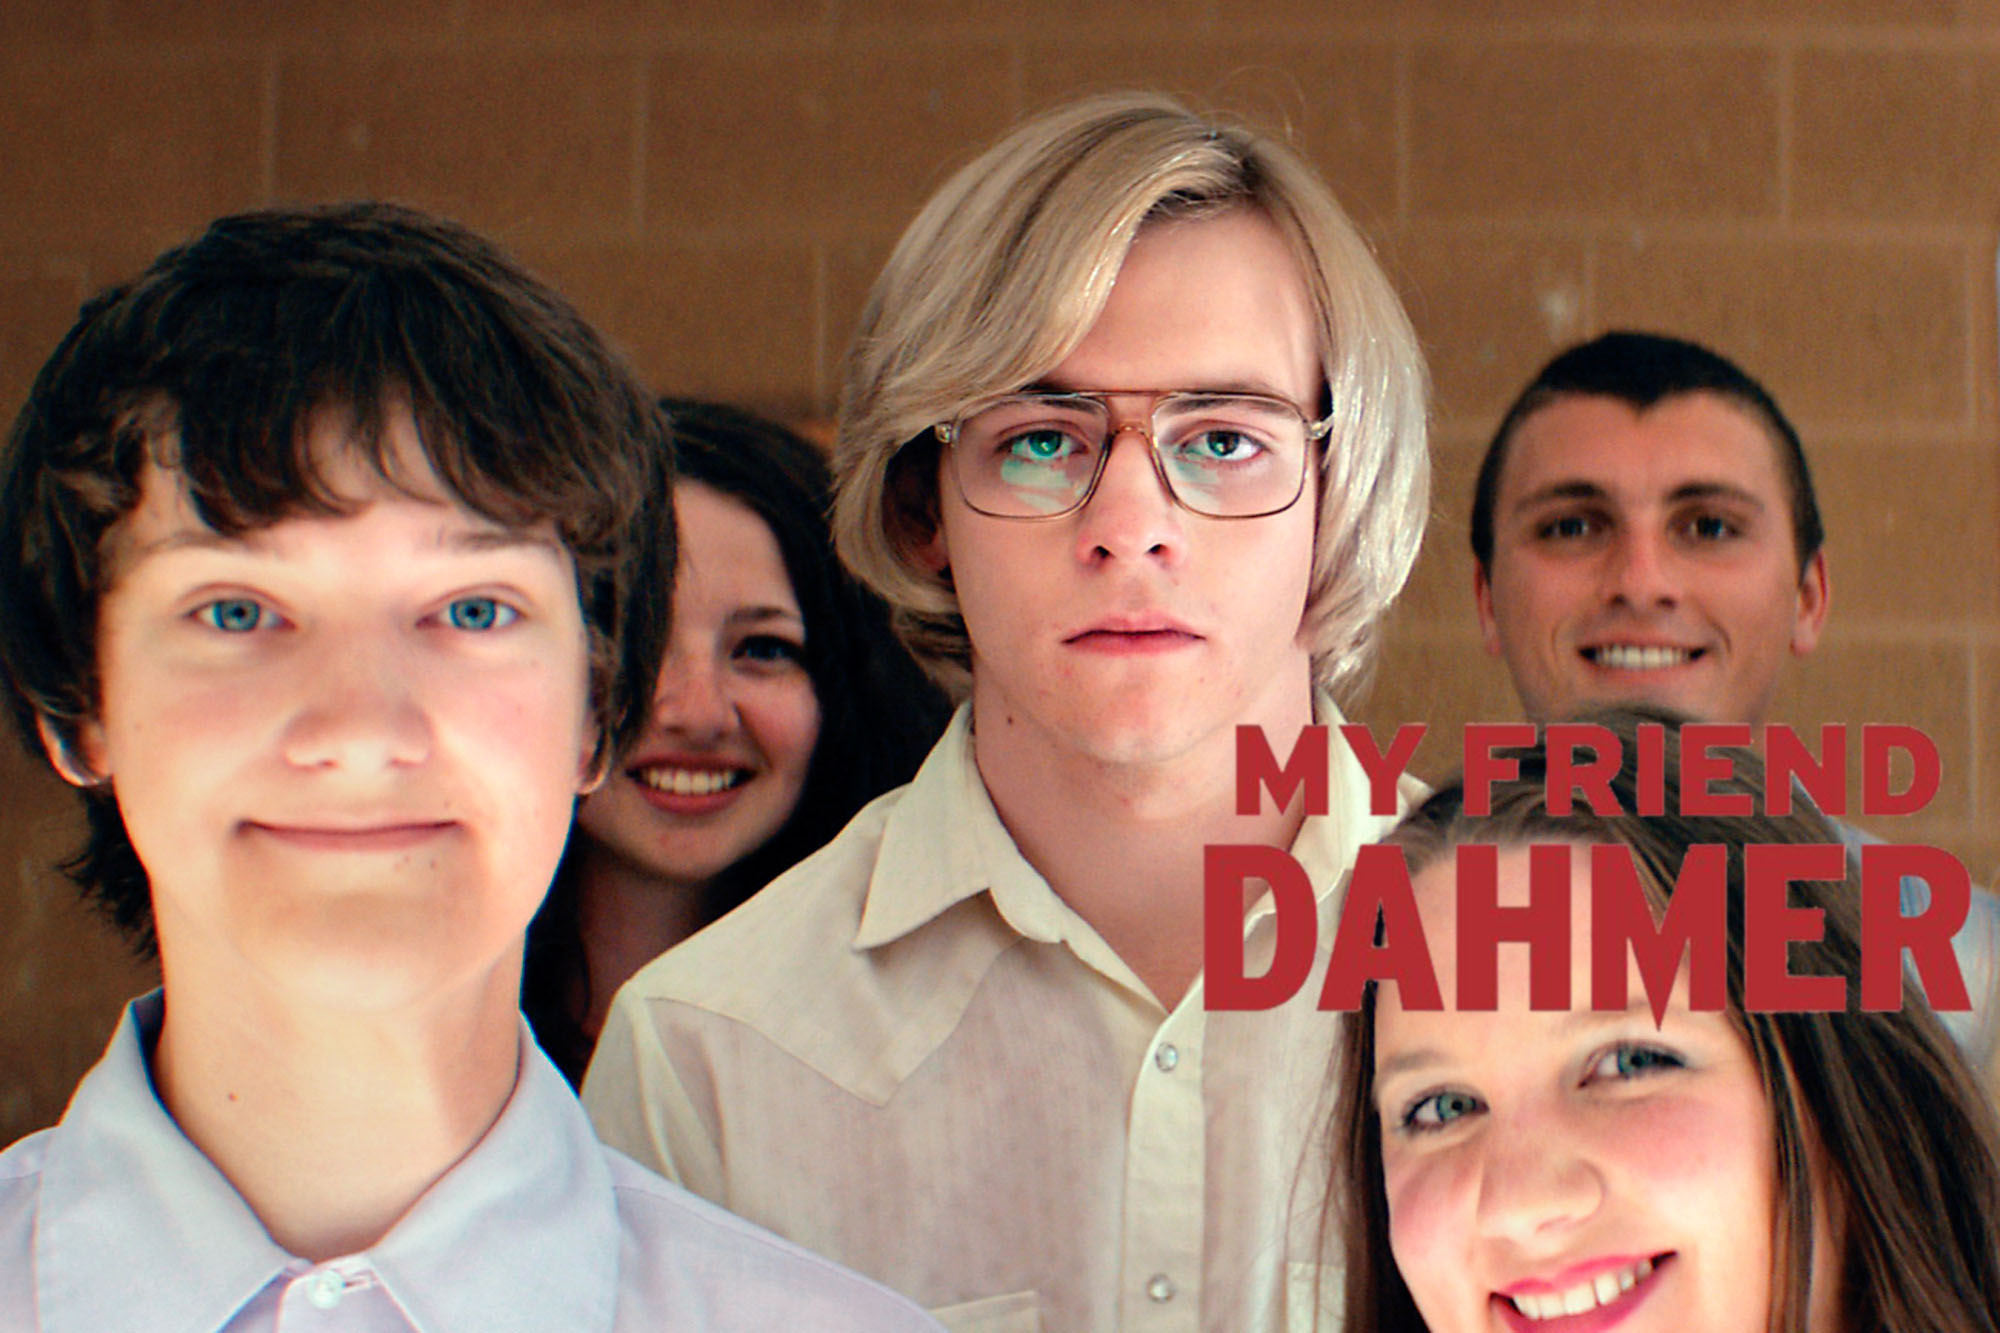 My Friend Dahmer out in theaters